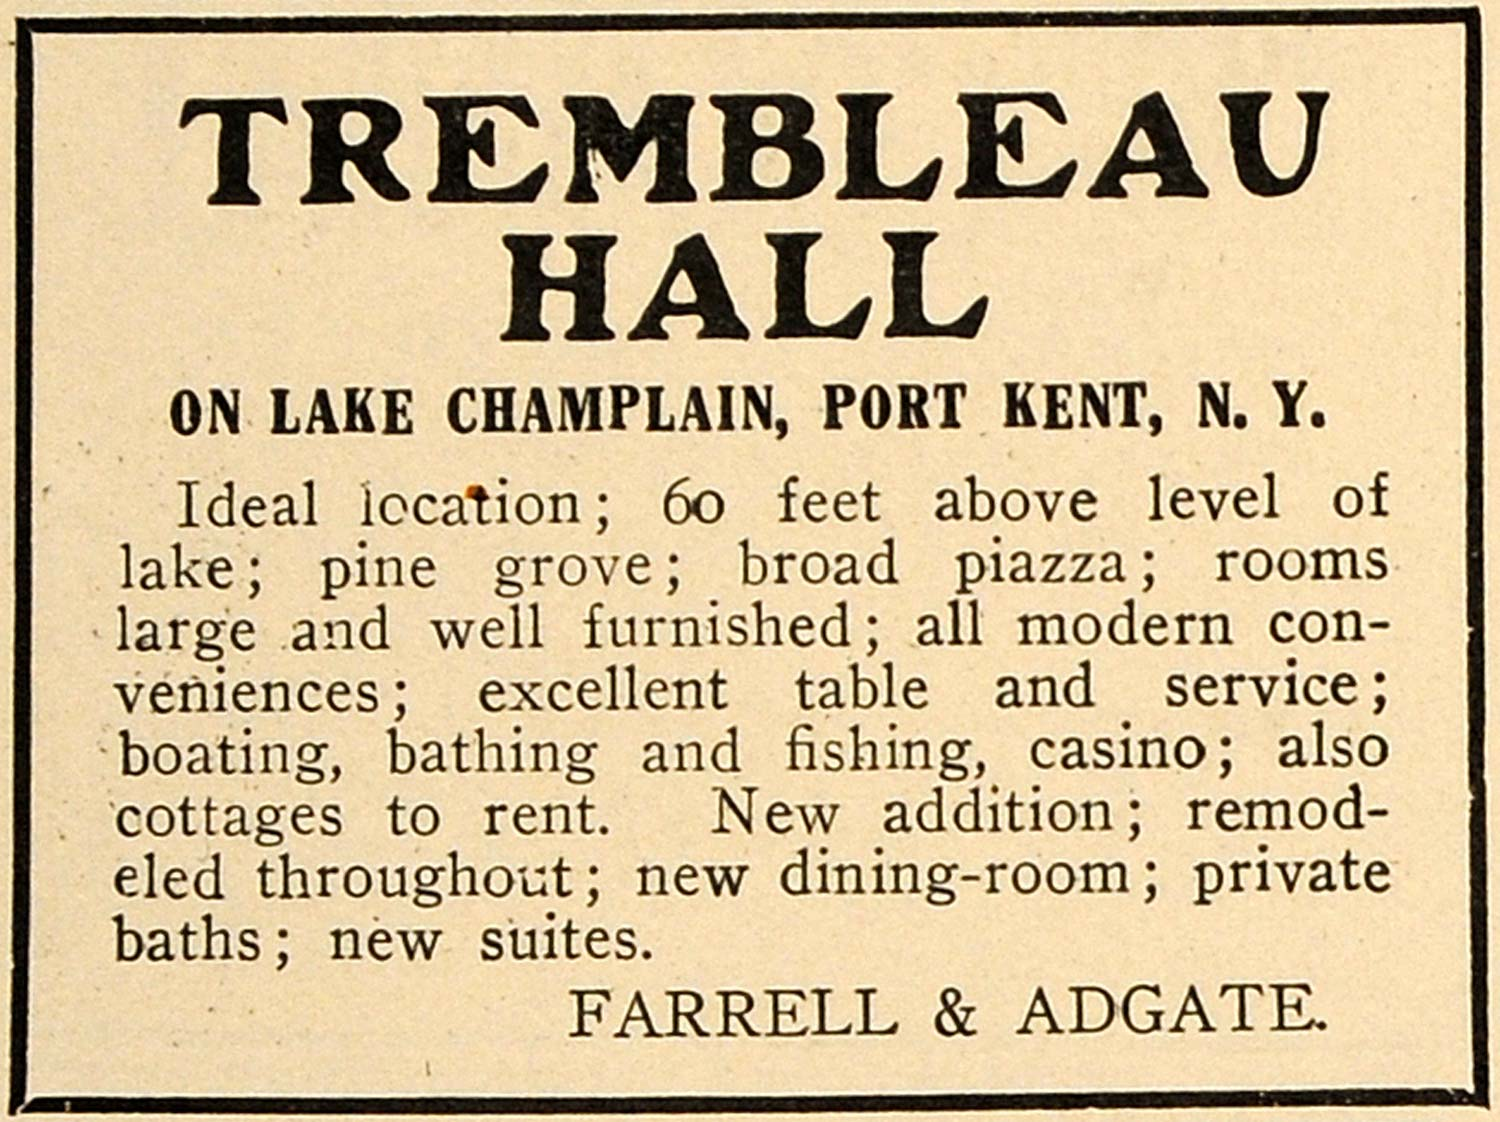 1910 Ad Trembleau Hall Hotel Lake Champlain Port Kent - ORIGINAL TOM2